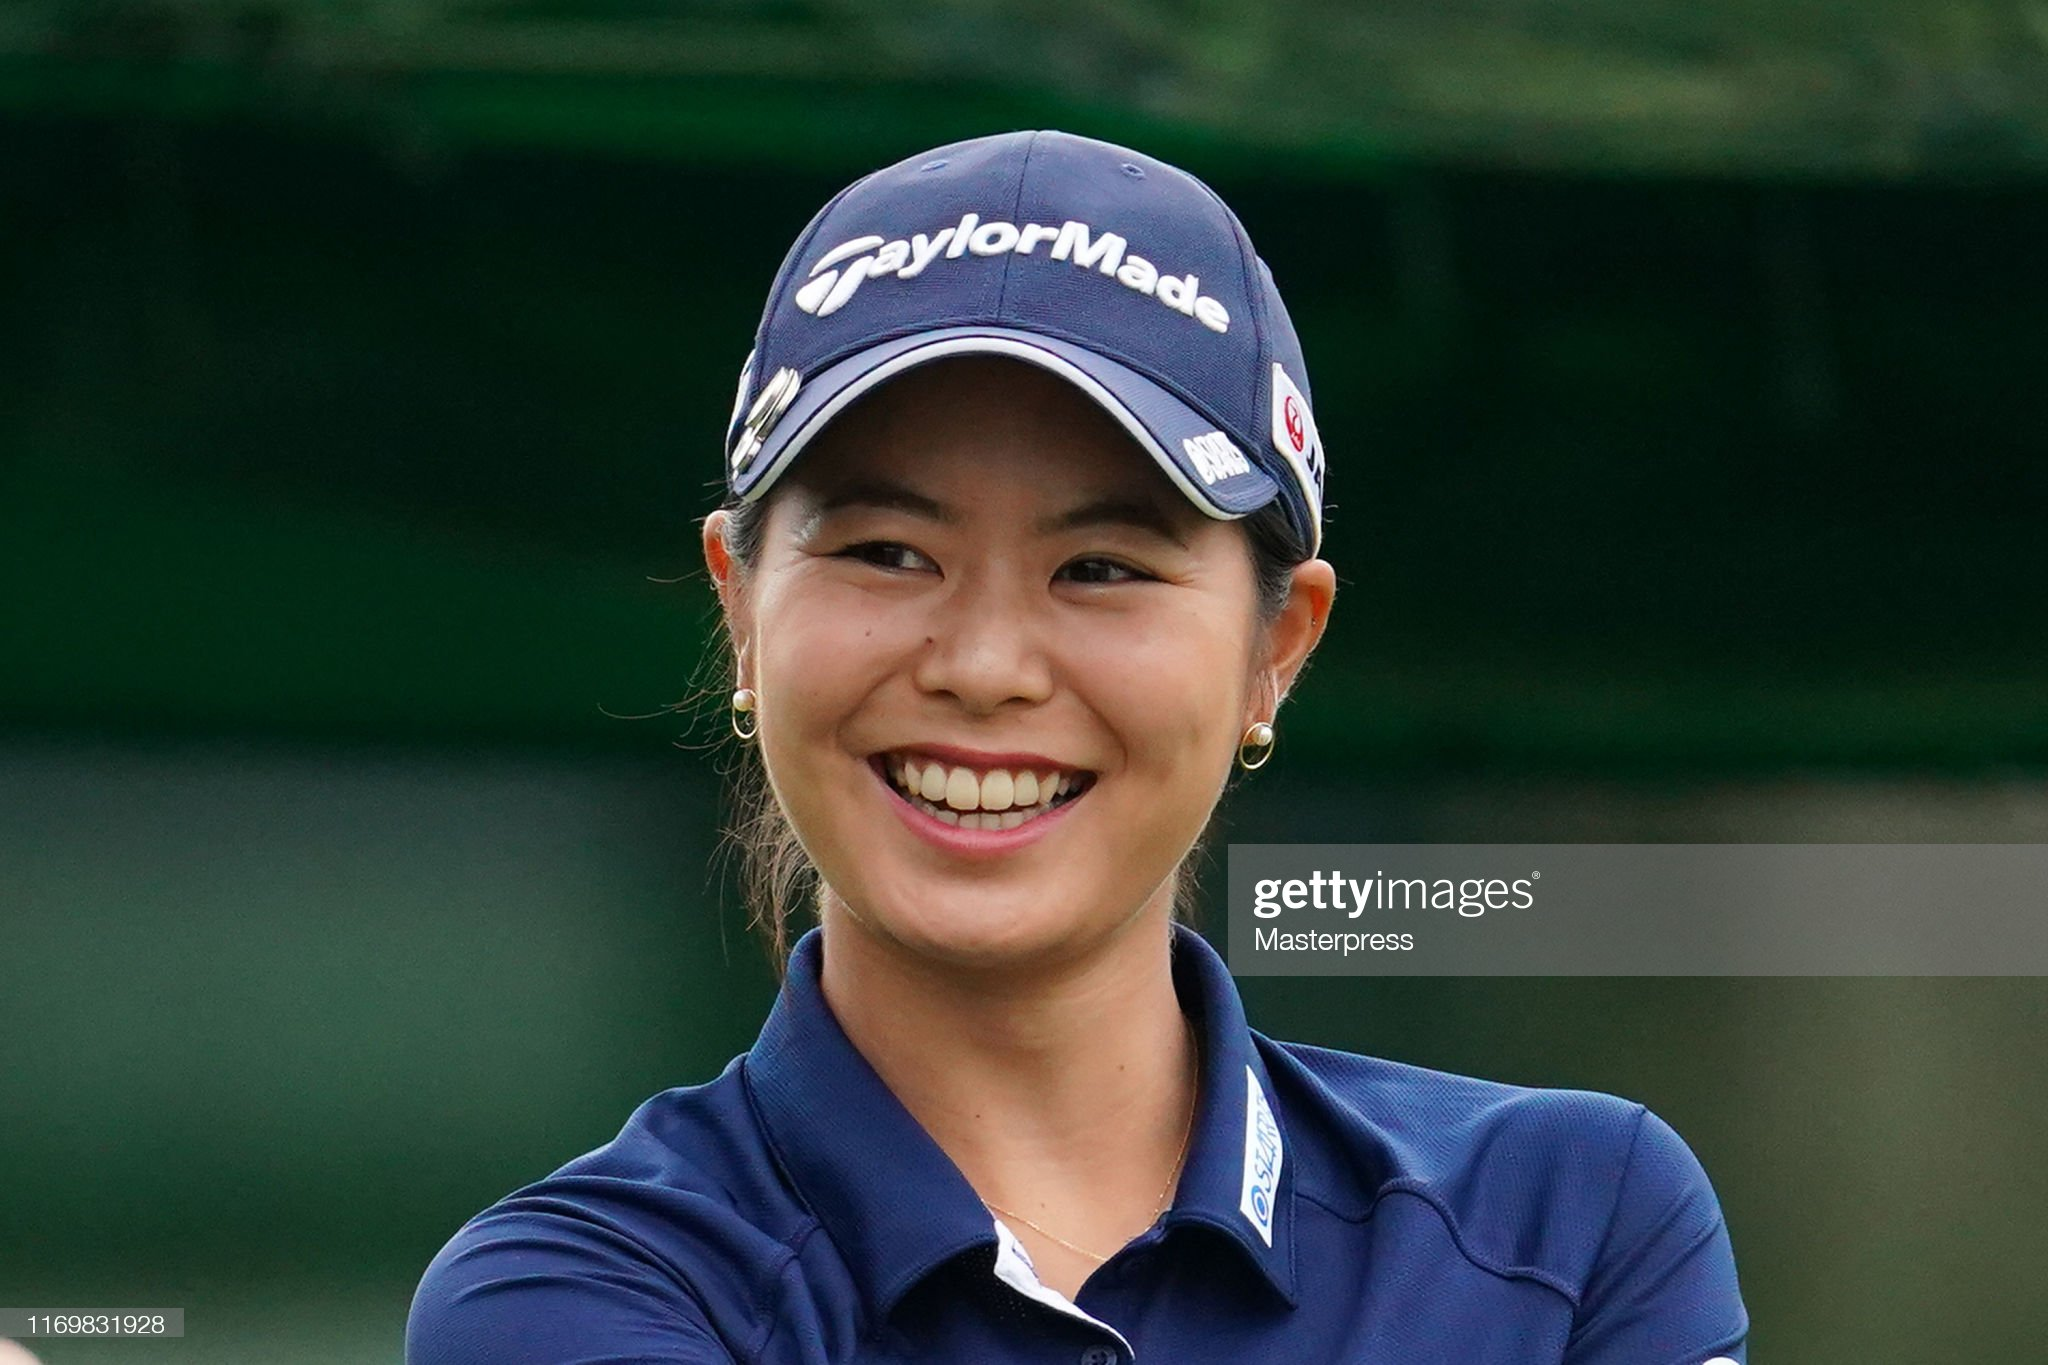 https://media.gettyimages.com/photos/ayaka-matsumori-of-japan-smiles-on-the-10th-tee-during-the-second-of-picture-id1169831928?s=2048x2048